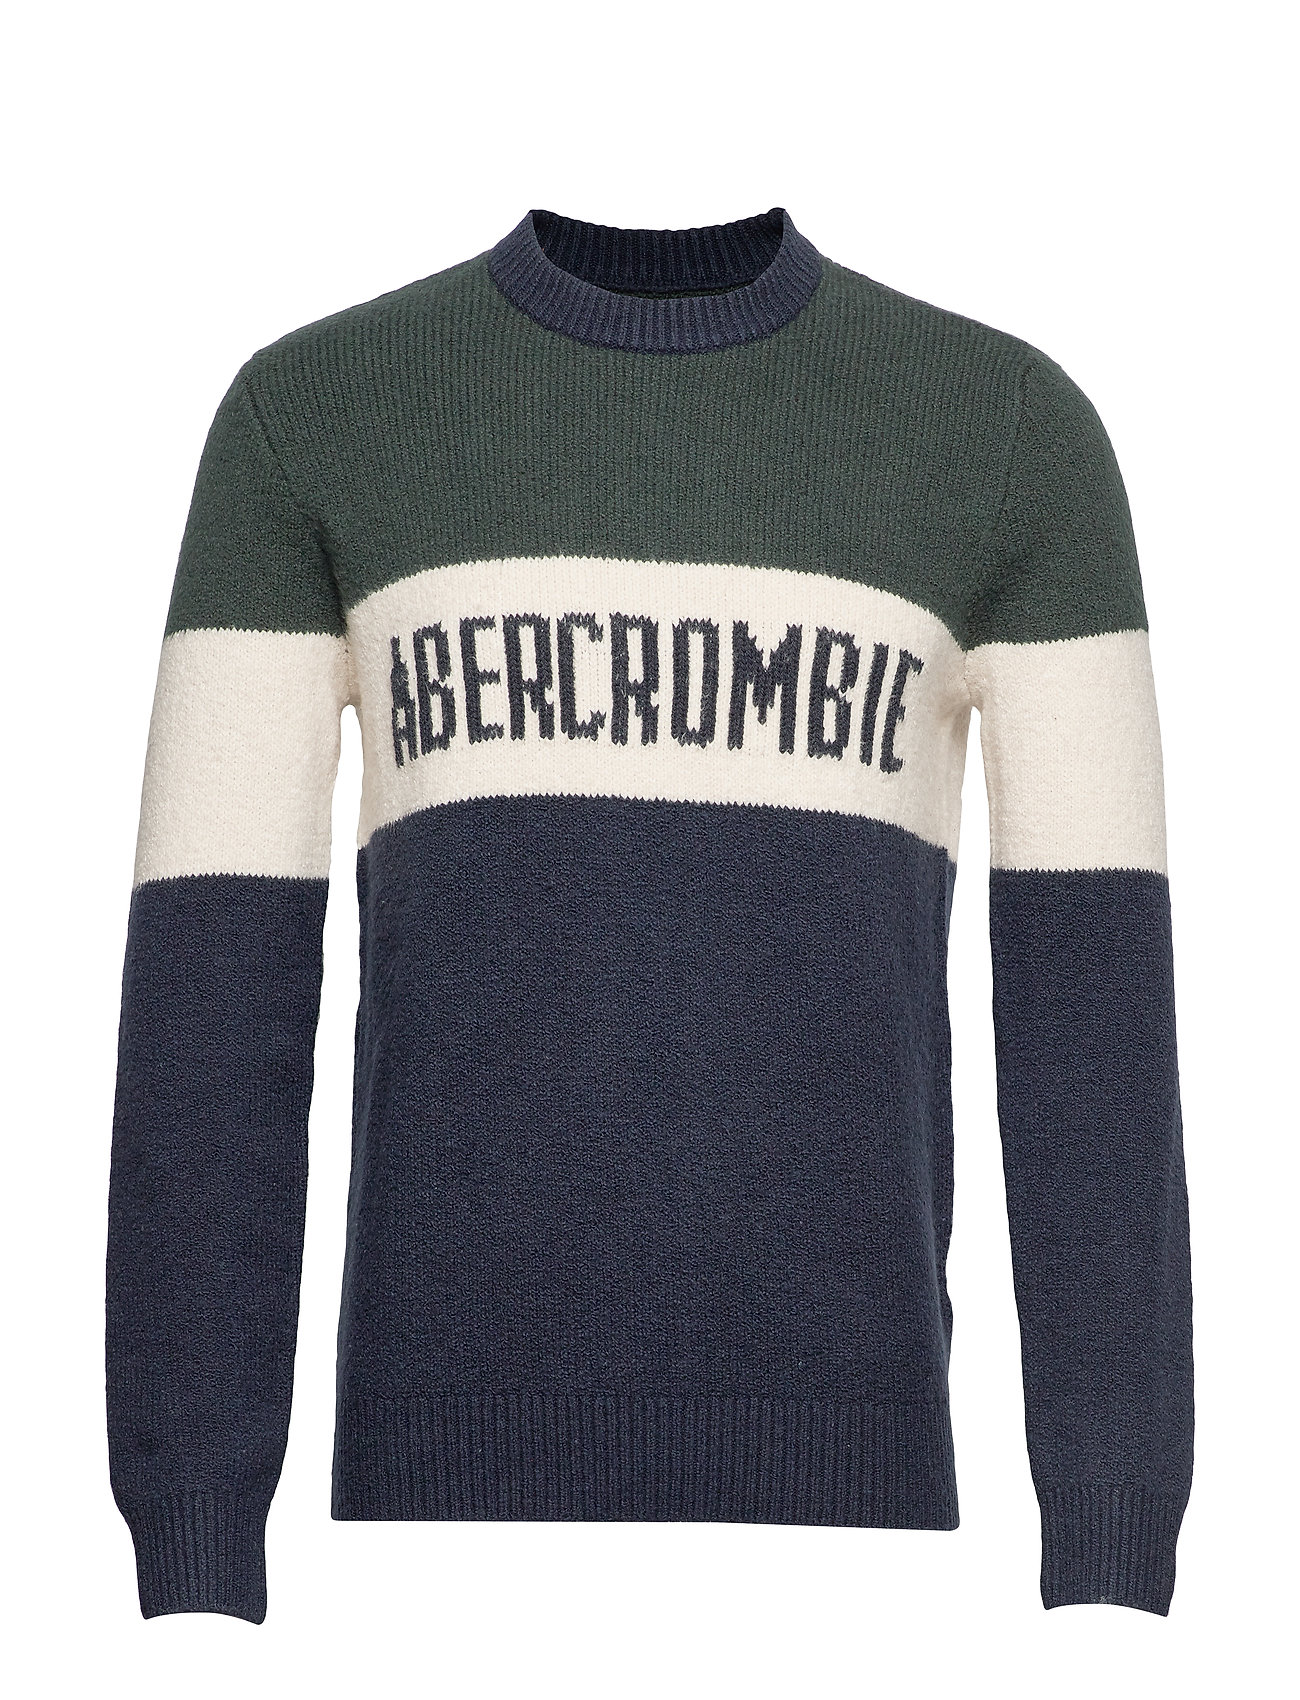 Abercrombie & Fitch Logo Crew Sweater - NAVY PATTERN